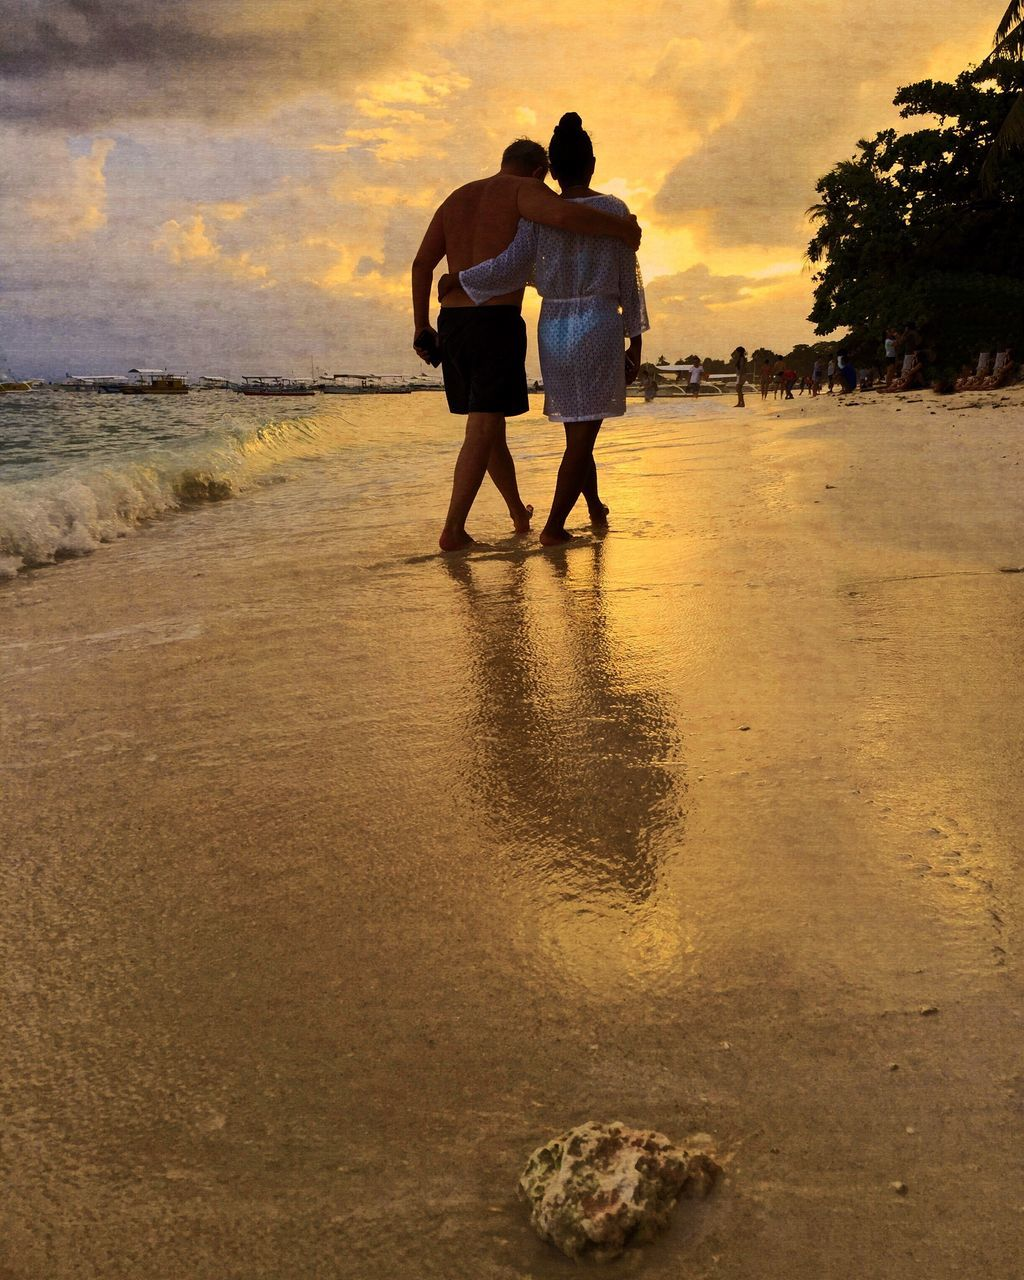 sunset, two people, love, togetherness, nature, real people, water, sky, sea, rear view, beach, walking, bonding, leisure activity, men, beauty in nature, full length, scenics, tranquil scene, outdoors, standing, vacations, tranquility, women, lifestyles, day, people